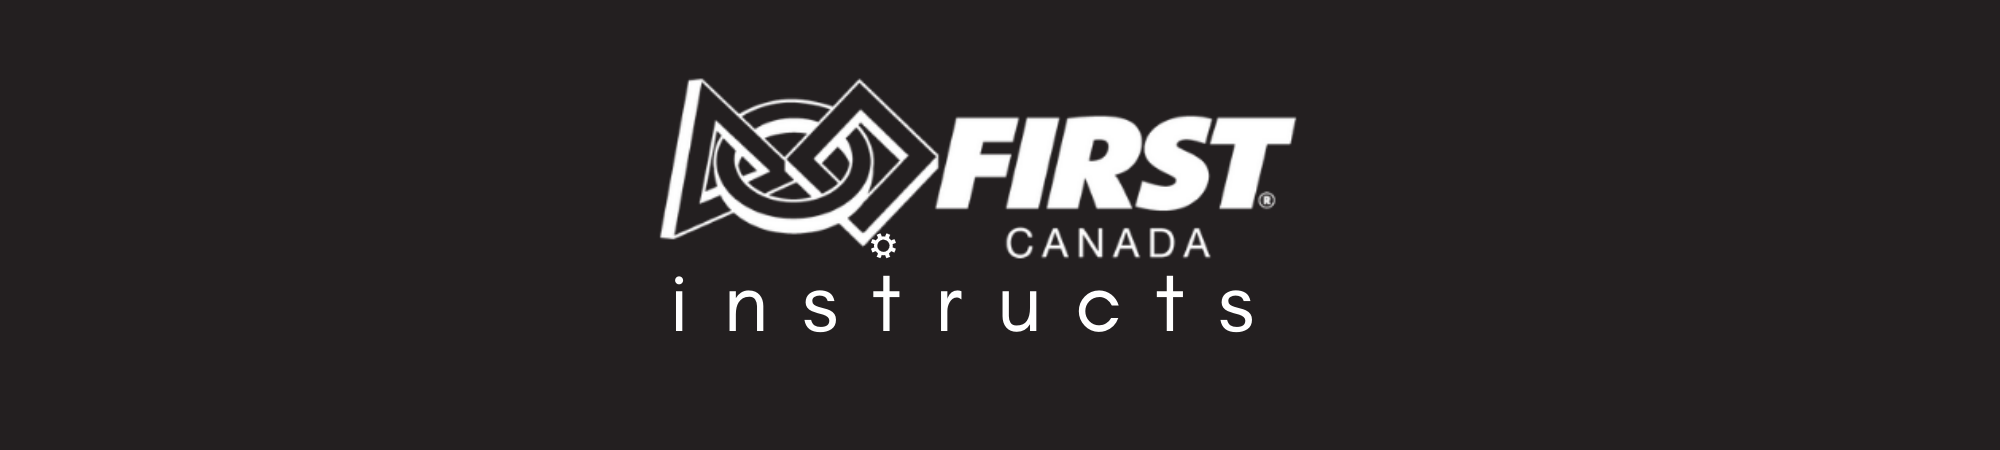 FIRST Canada Instructs